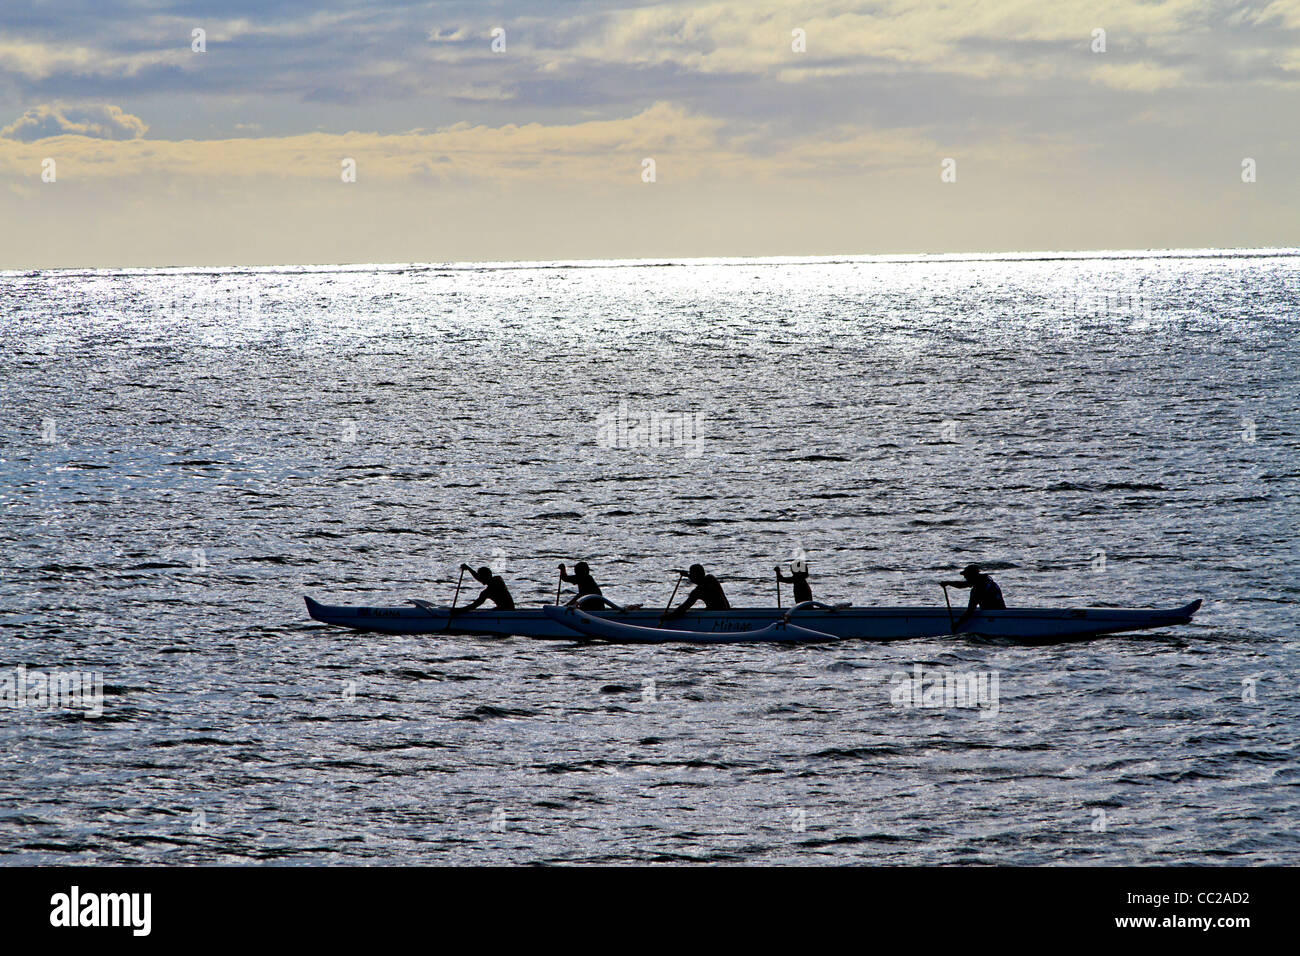 Local youths paddle a traditional outrigger Hawaiian canoe in the waters off Molokai, Hawaii, USA. - Stock Image